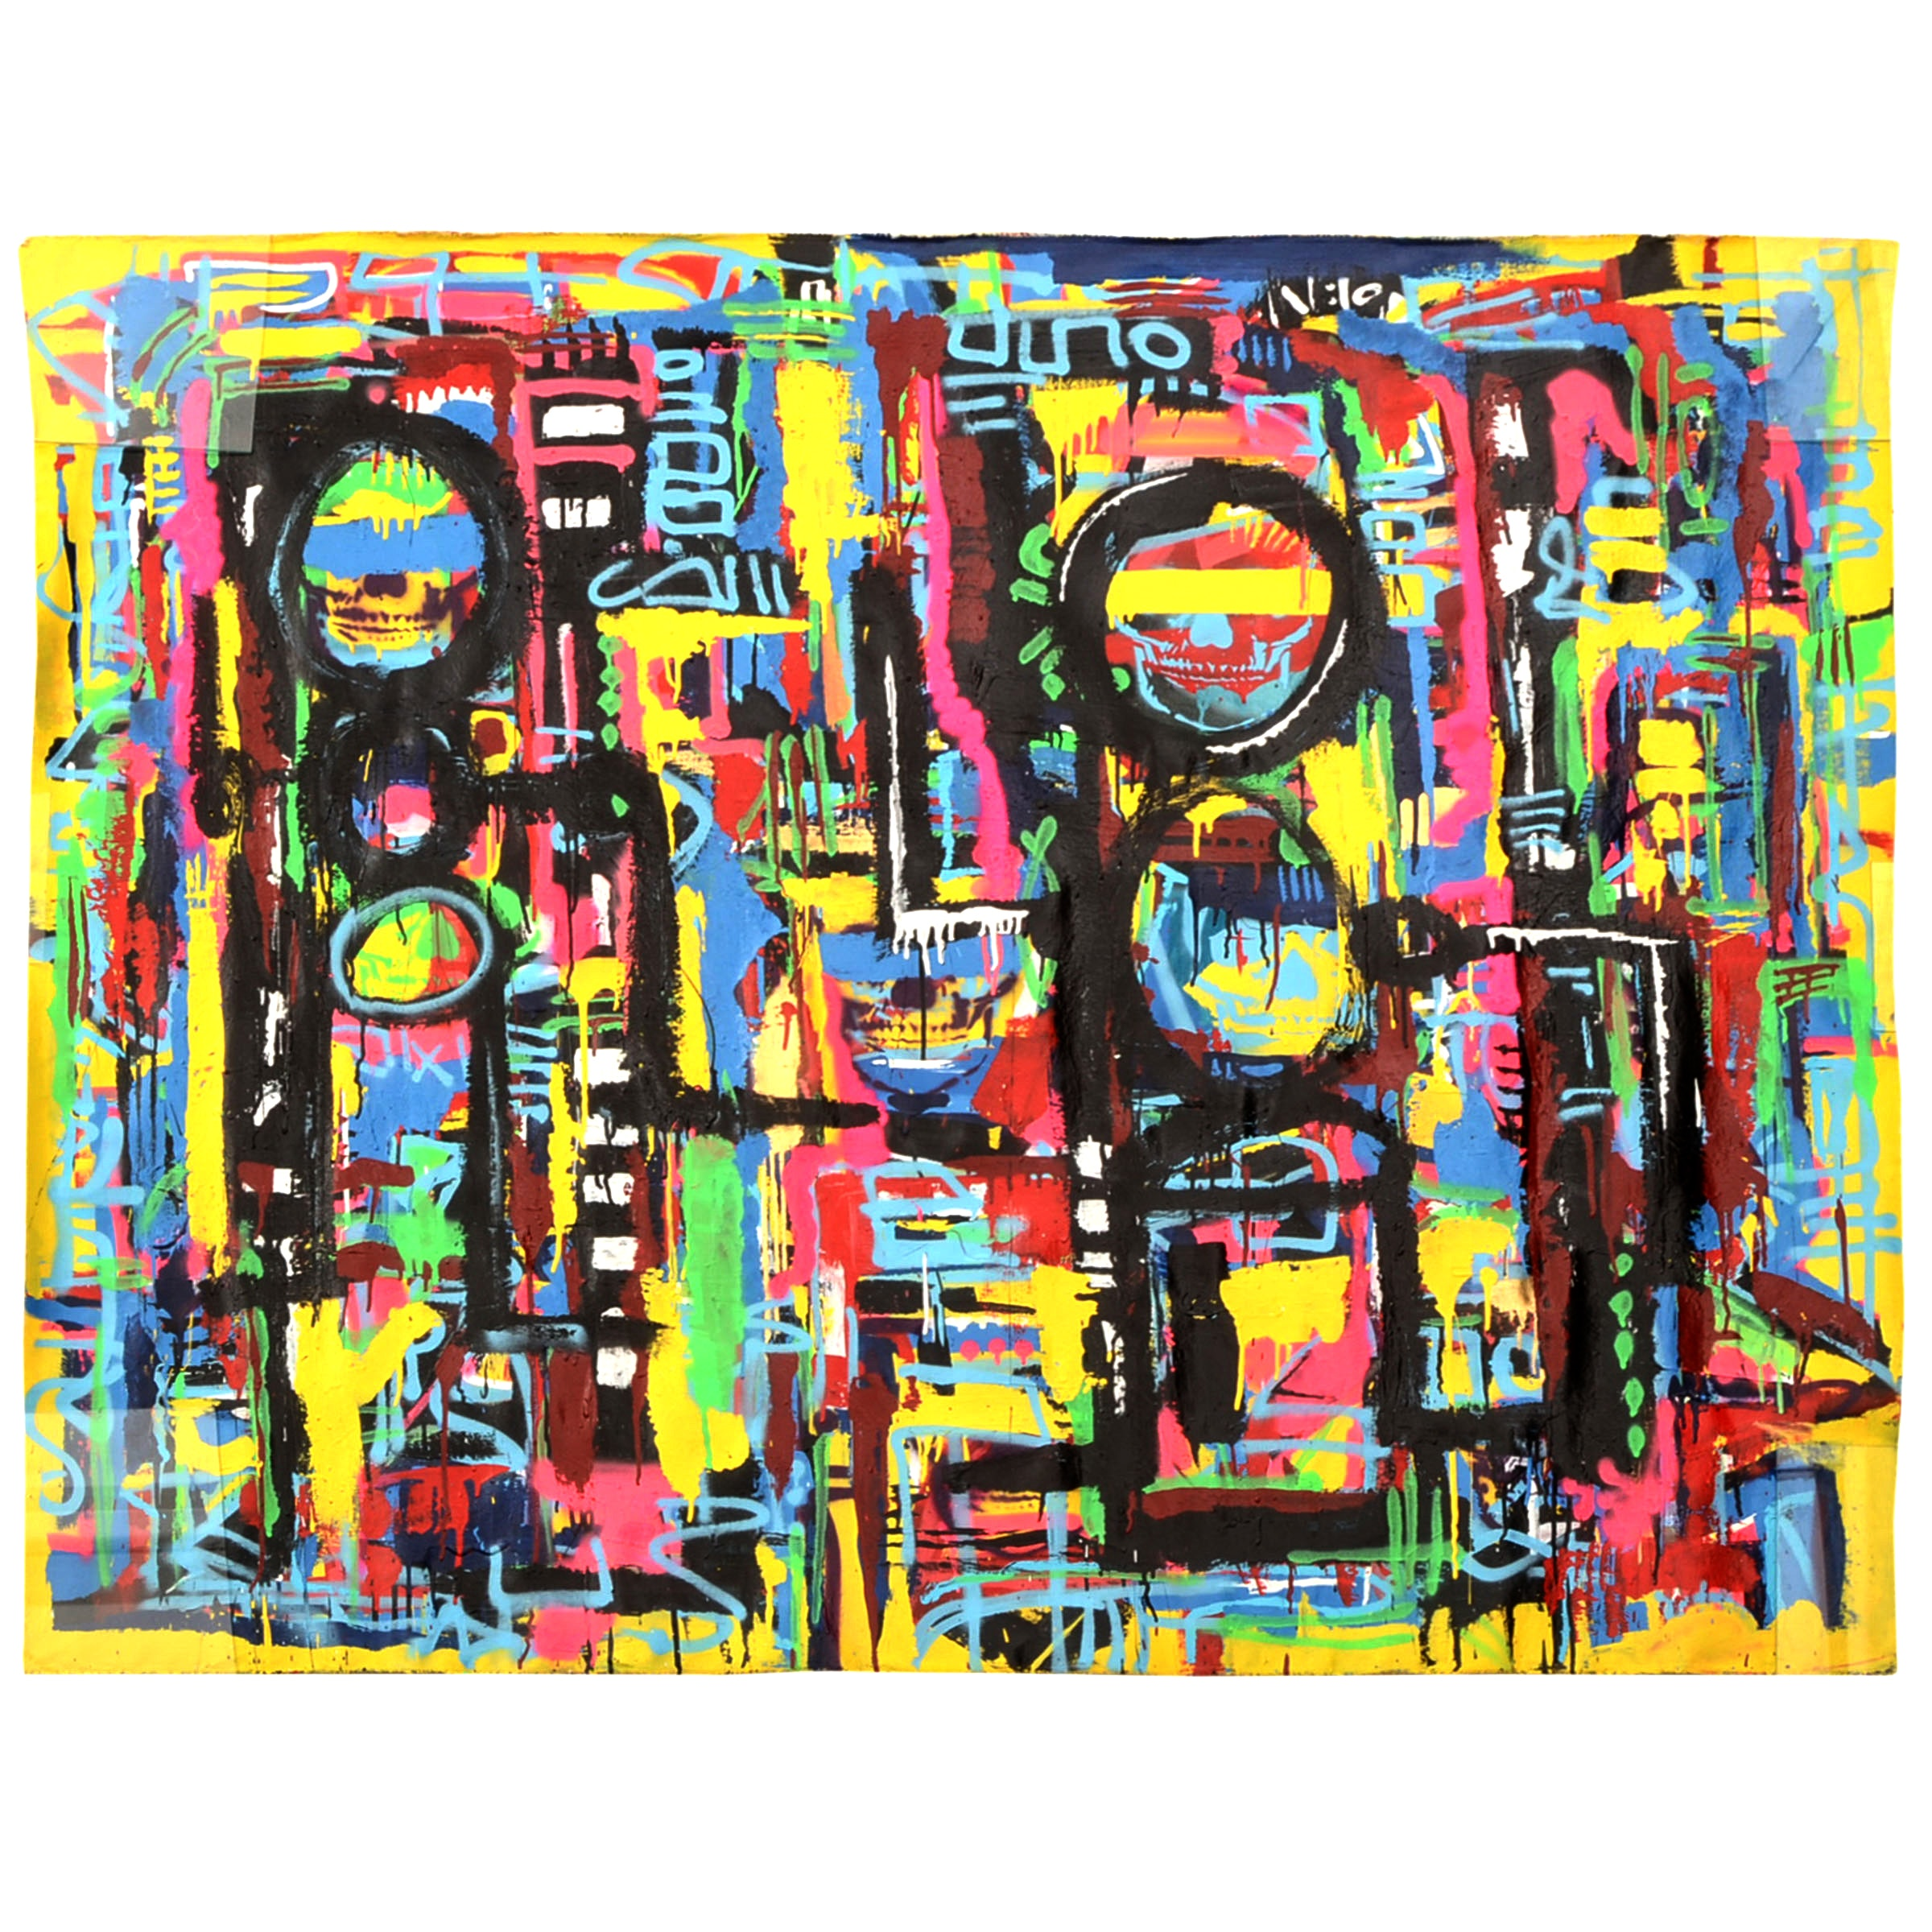 R.C. Raynor Large-scale Acrylic on Canvas Urban Graffiti Style Painting